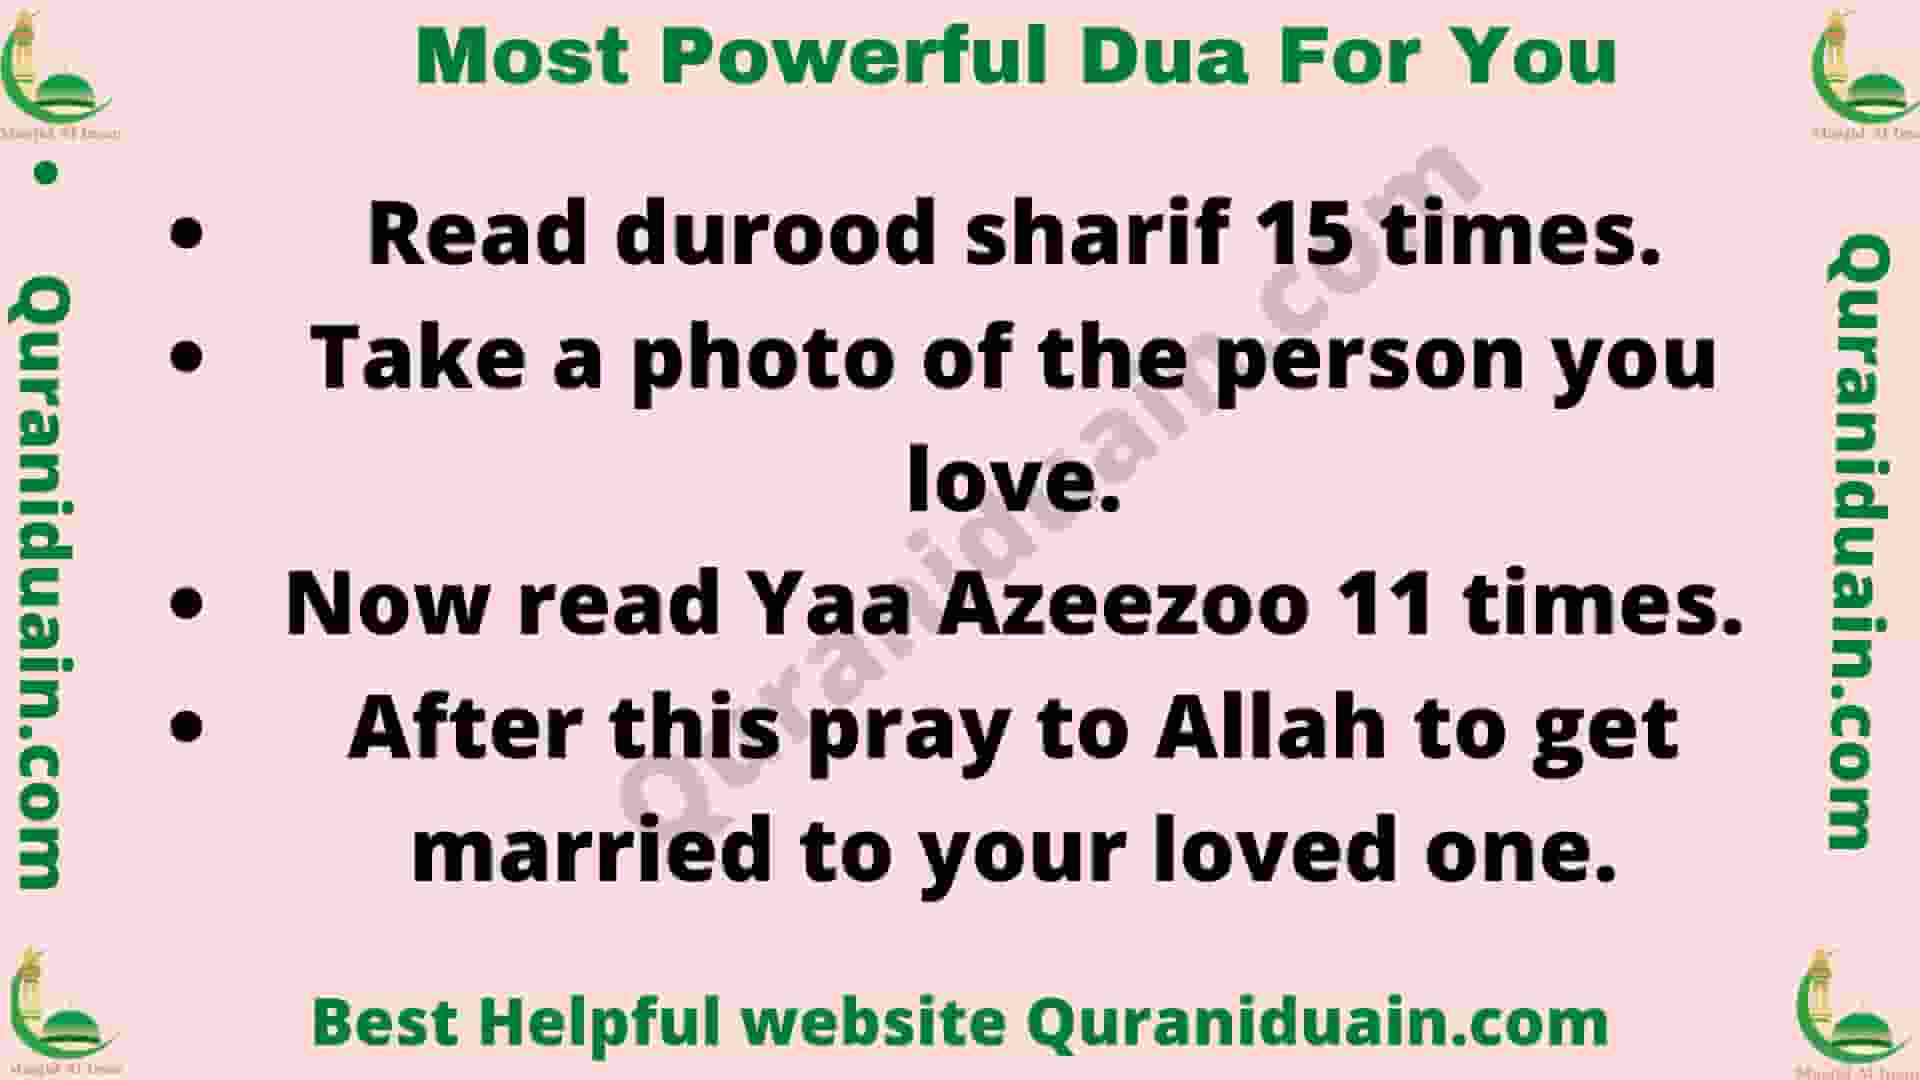 Most Powerful Dua For You